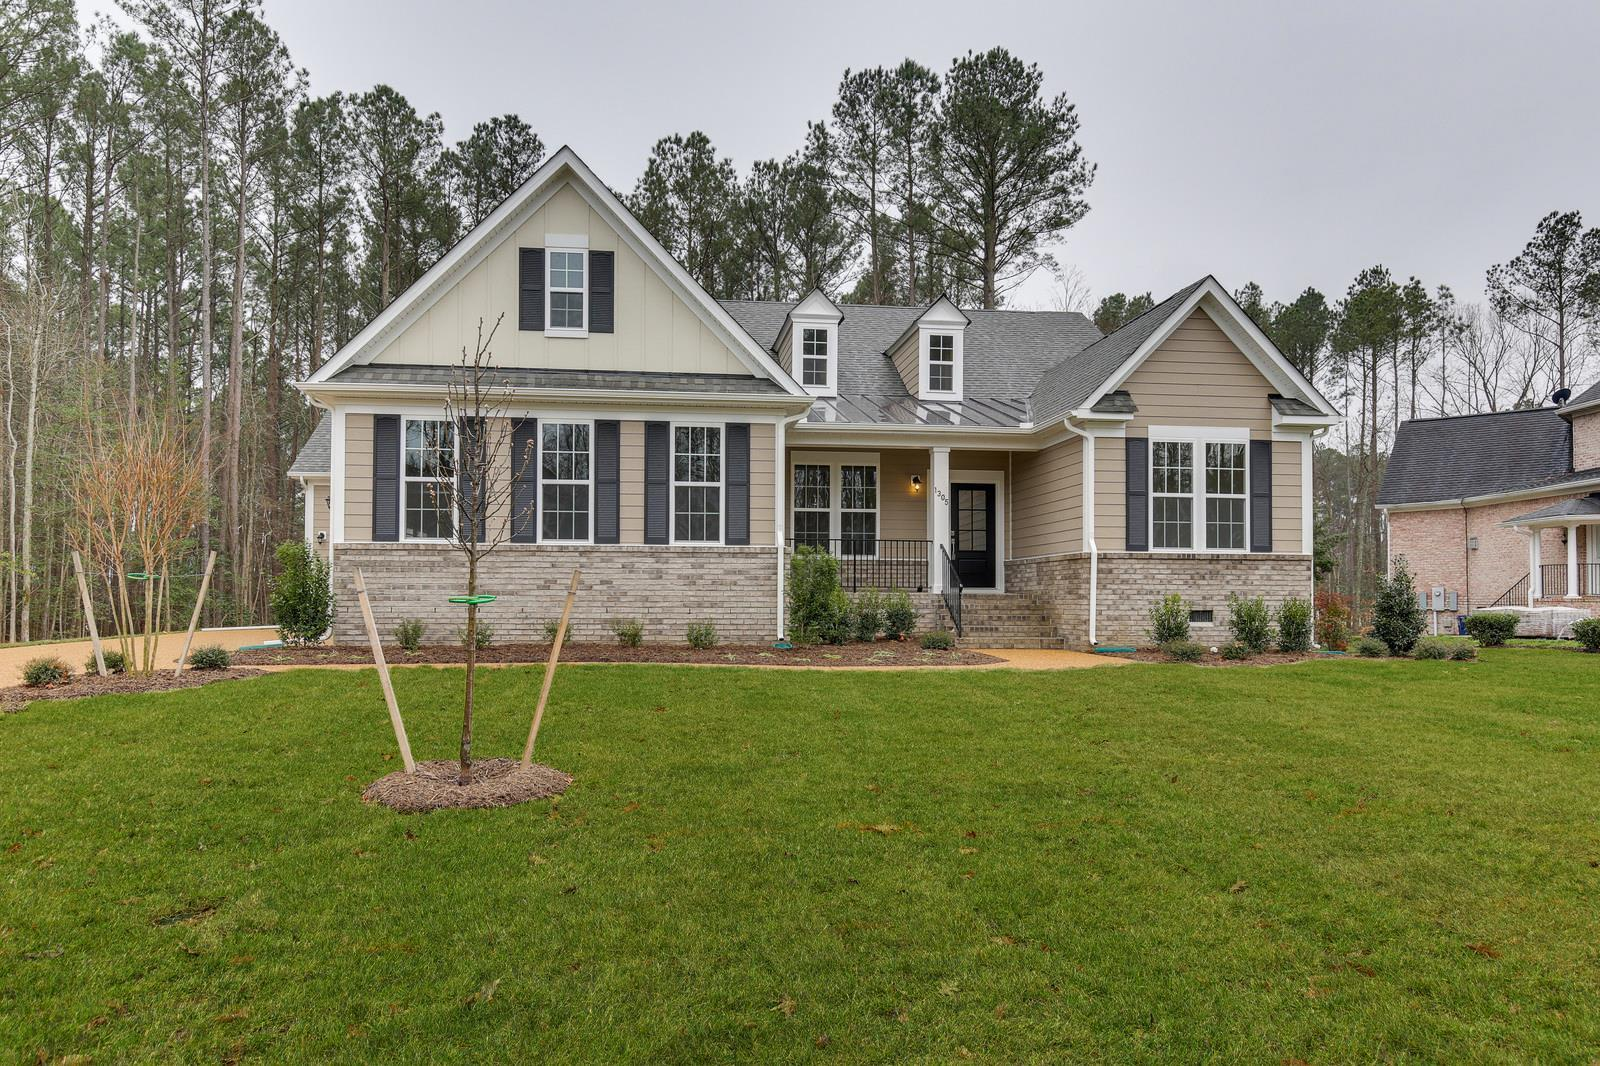 Lexington   Cypress Creek: Smithfield, Virginia   HHHunt Homes